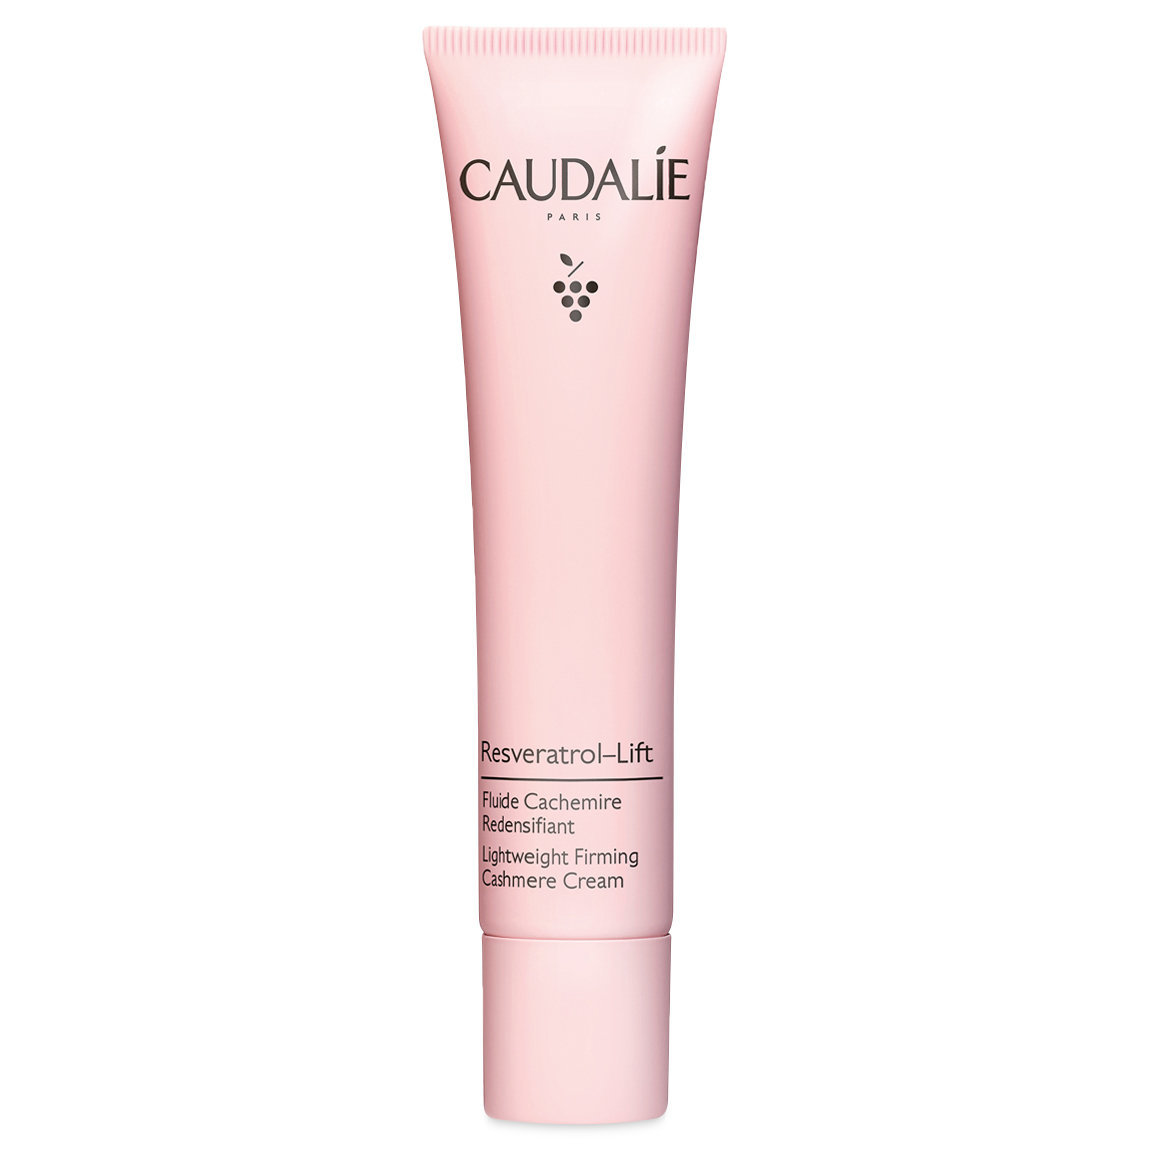 Caudalie Resveratrol-Lift Lightweight Firming Cashmere Cream alternative view 1 - product swatch.